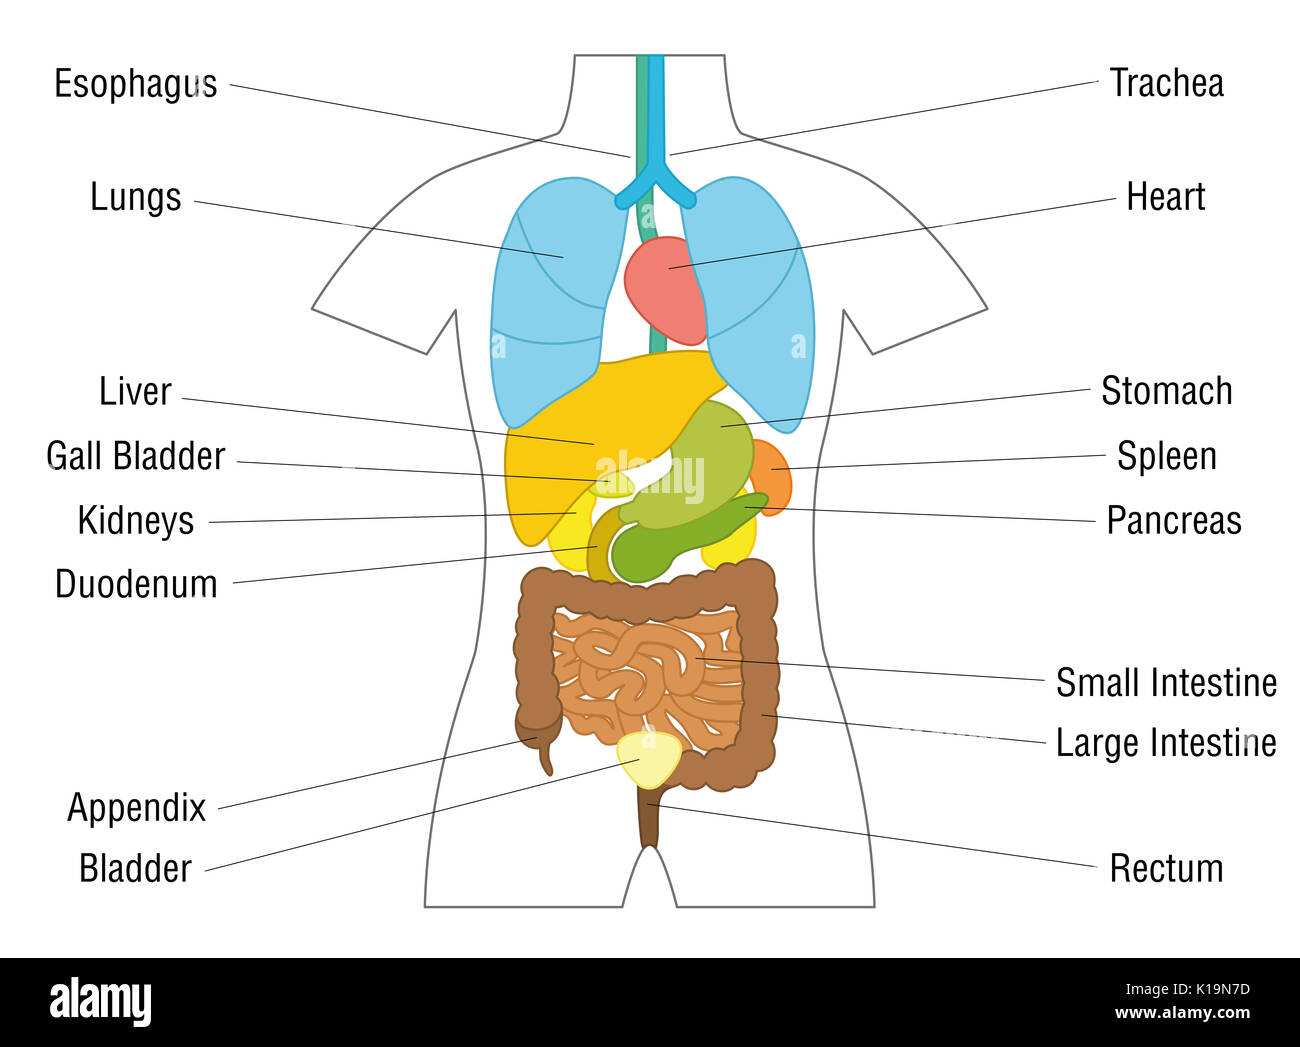 Diagram Of Organs In Body Color - Circuit Diagram Symbols •